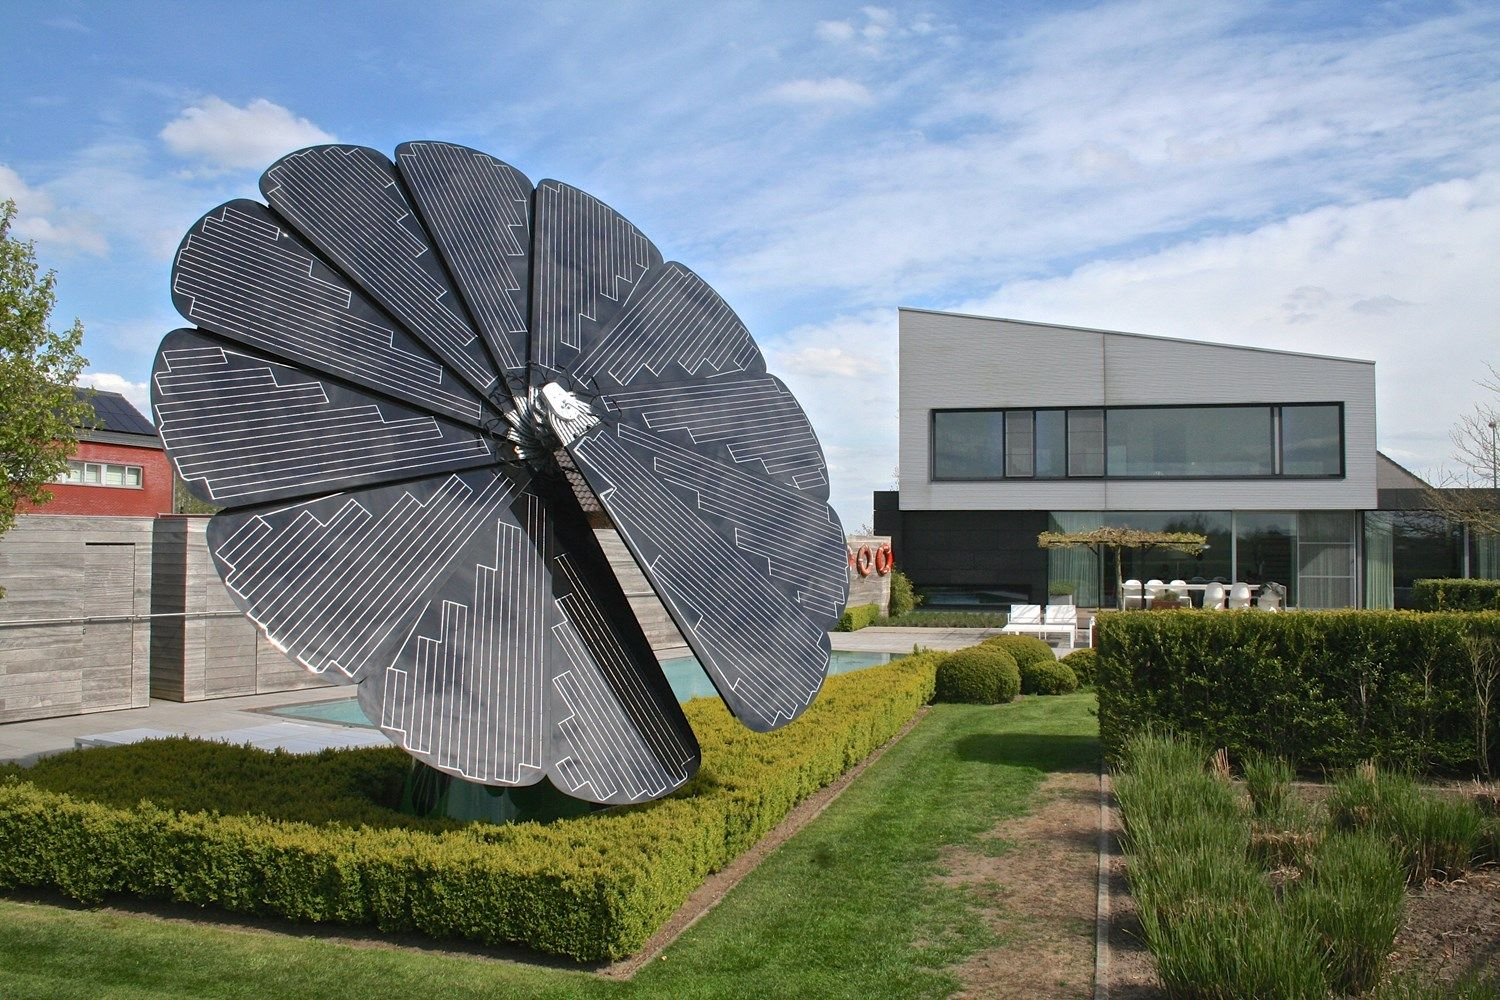 Florida State University To Place Quot Smart Flower Quot Solar